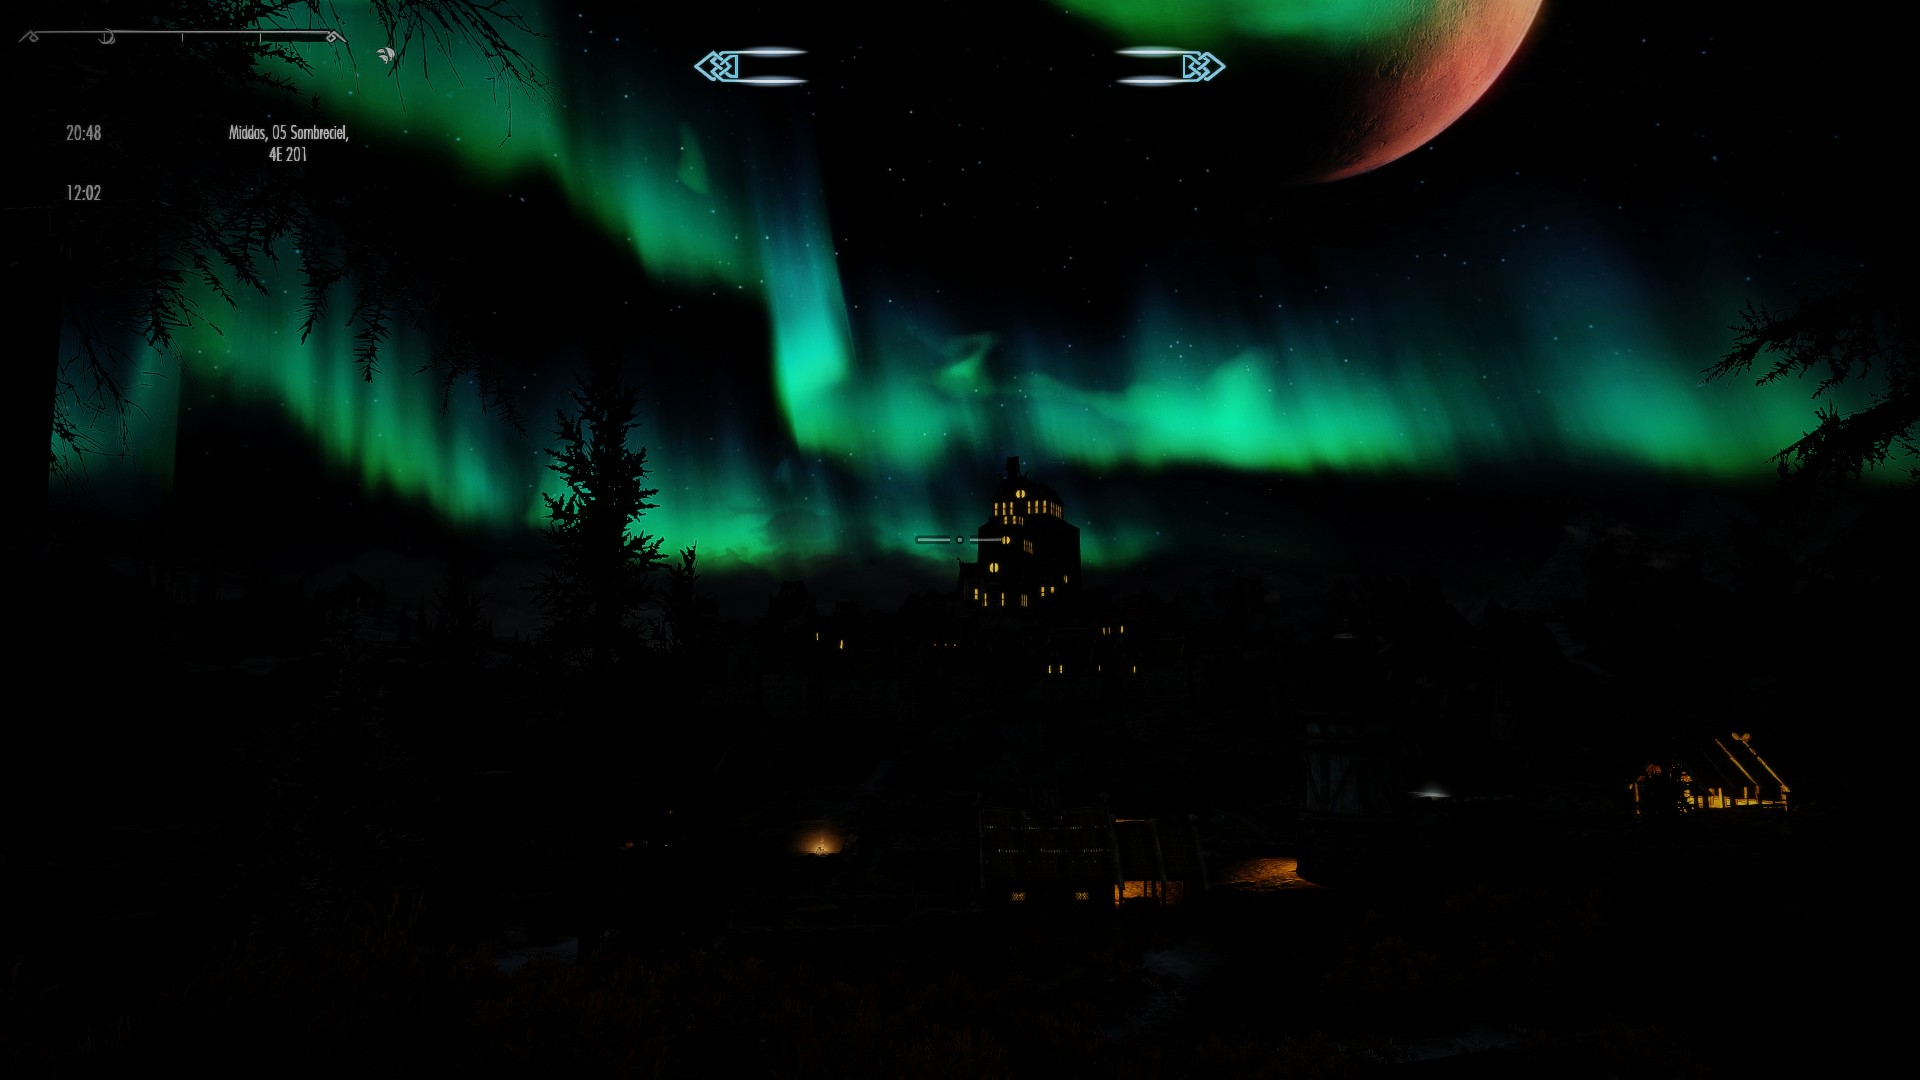 Skyrim at night with a sweetfx preset